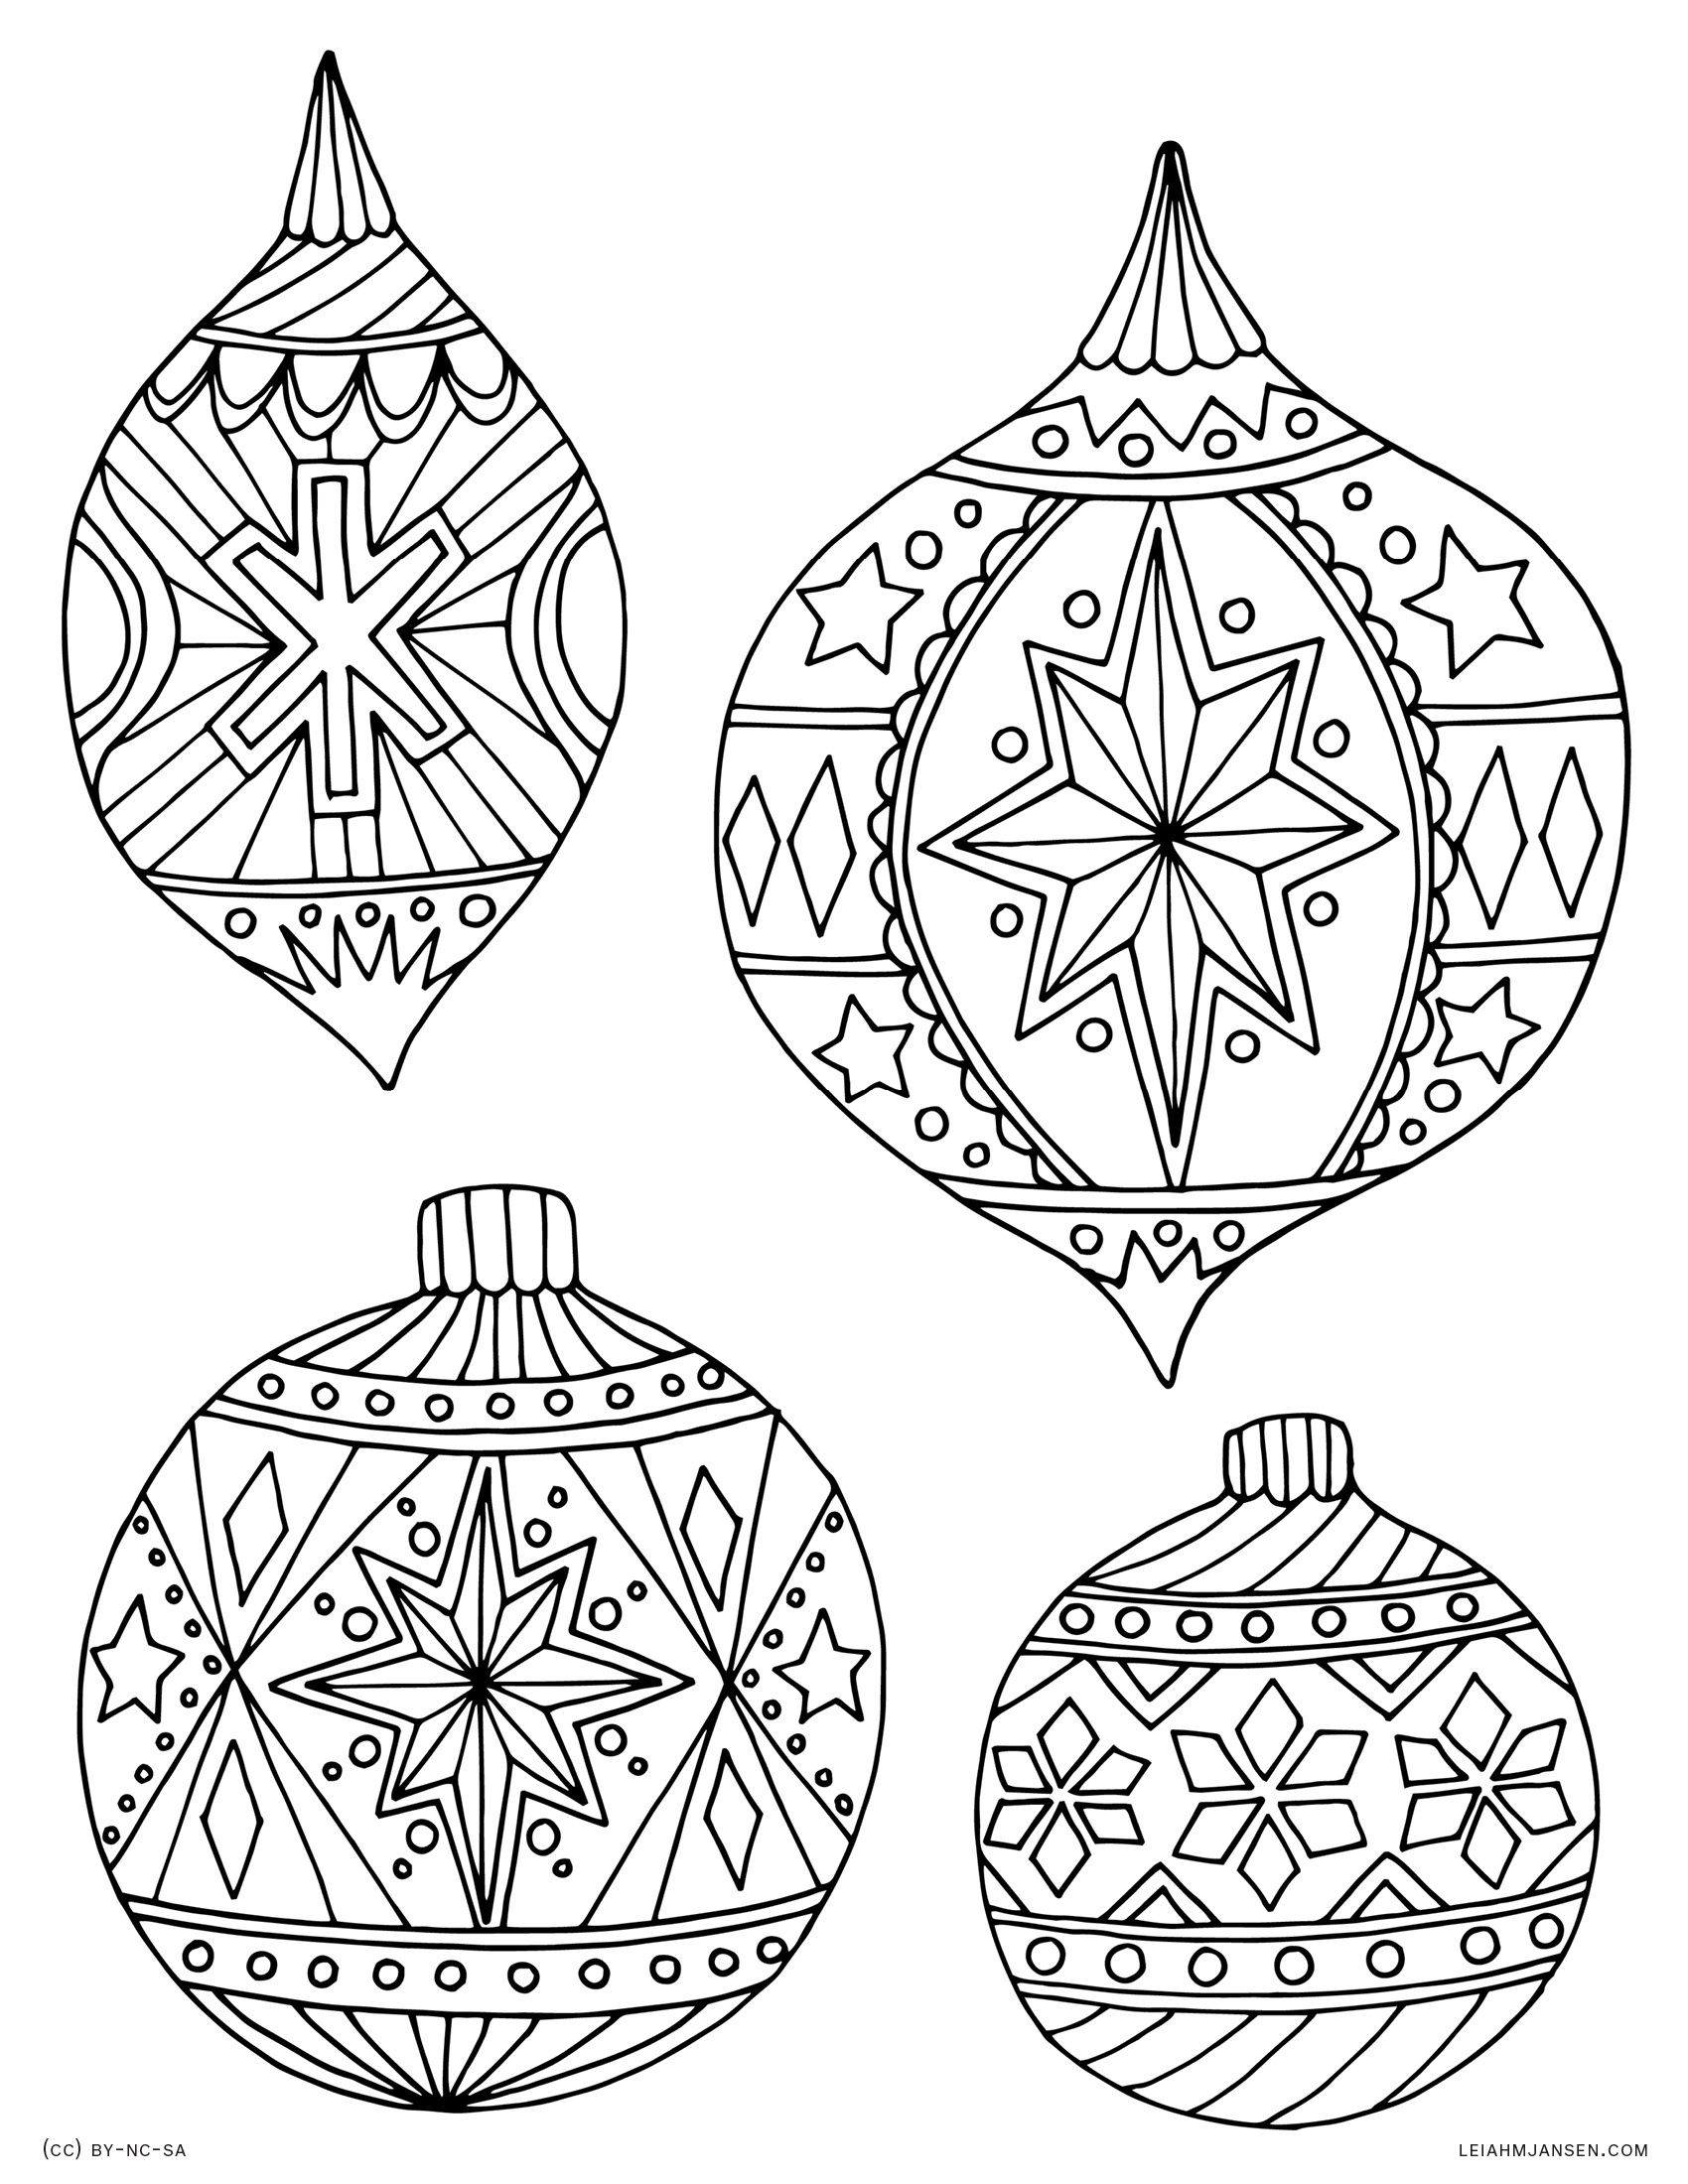 Holiday Coloring Pages - Free Printable Christmas Tree Ornaments Coloring Pages